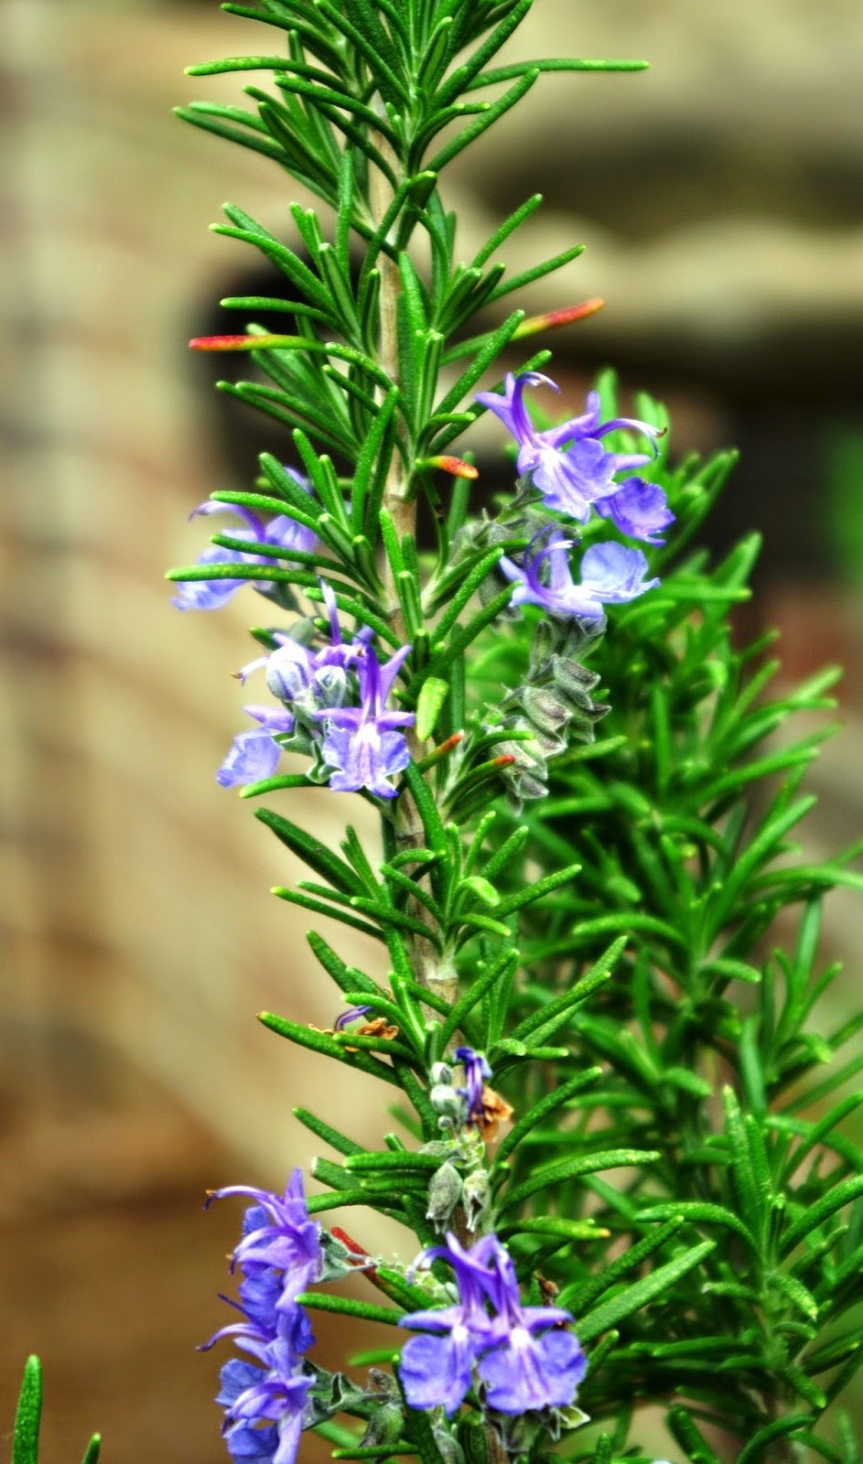 Herb Guide: Growing and Using Rosemary